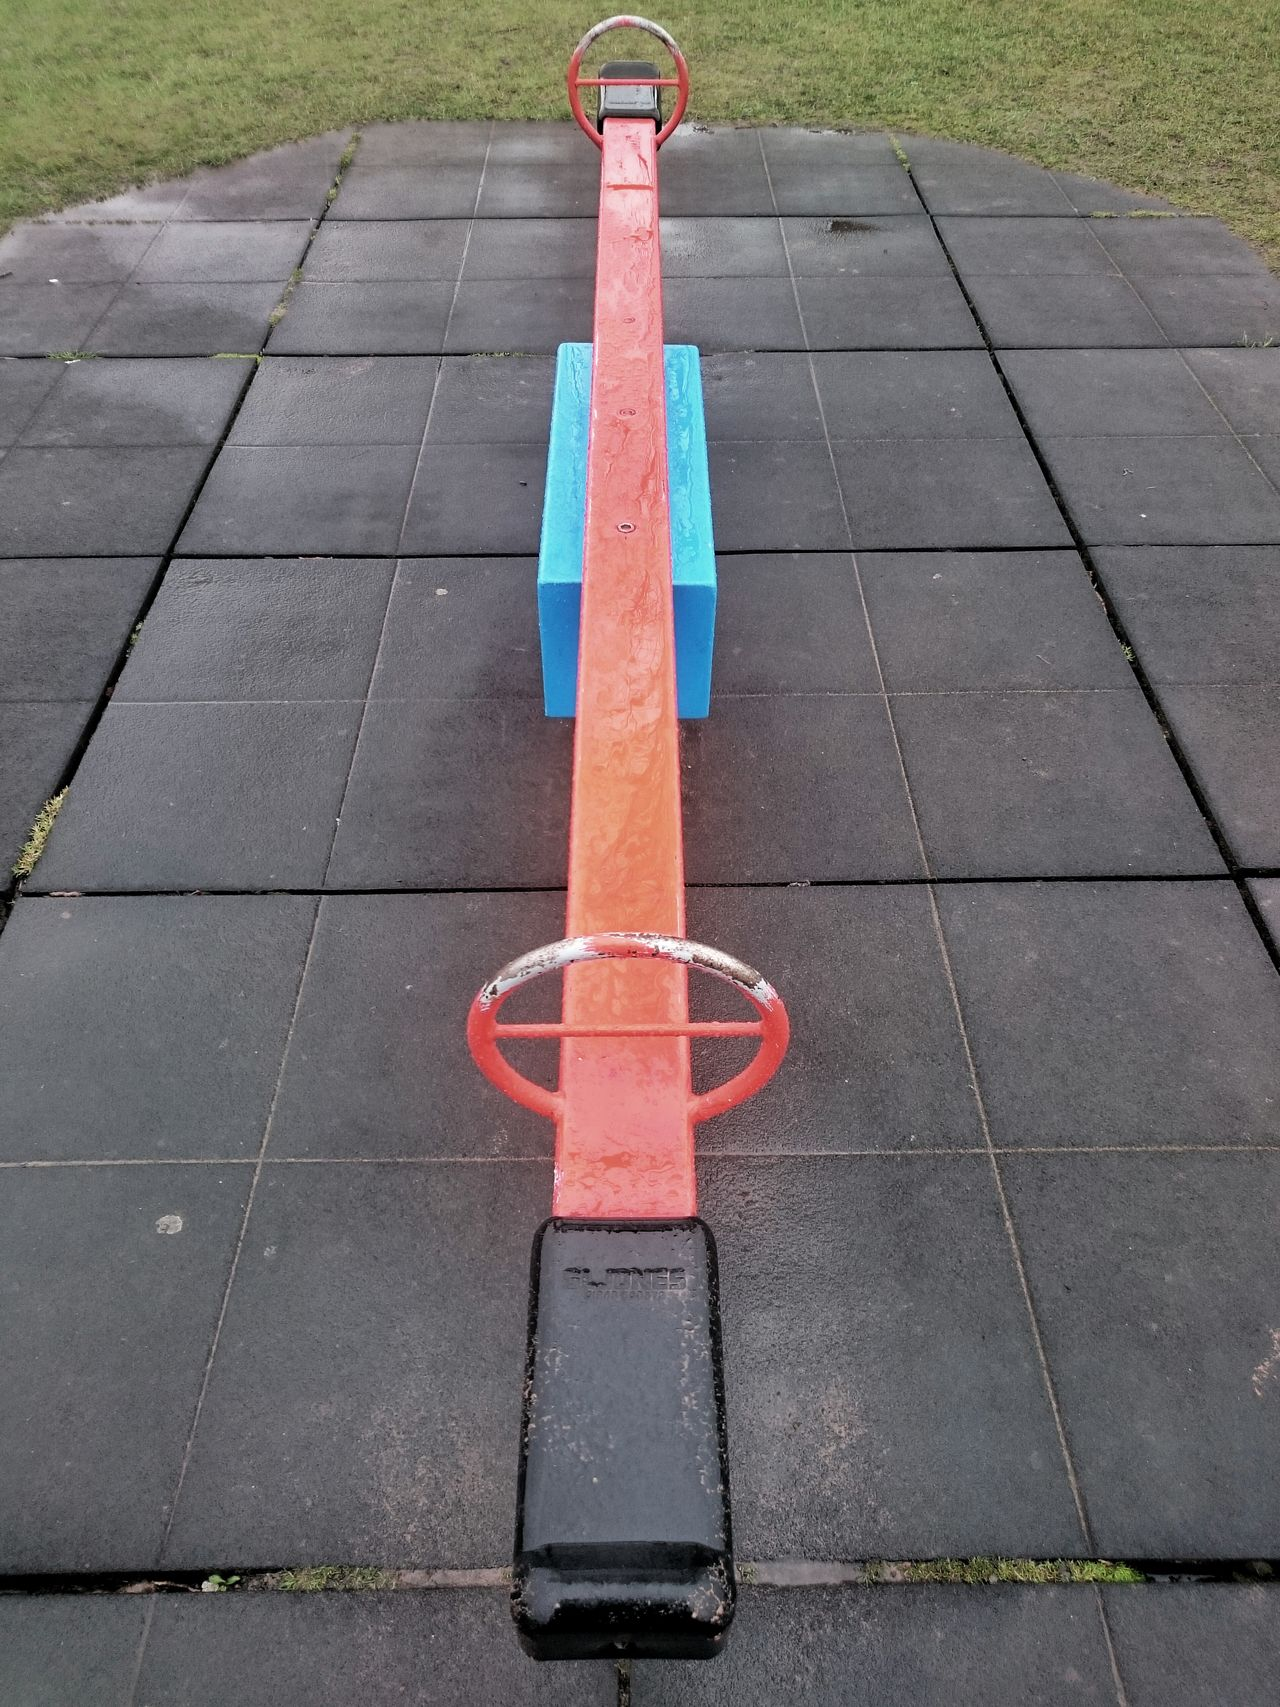 Seesaw // Seesaw Playing Play Playground Playground Equipment Children Play Area No People Field Taking Photos Days Out Stock Photo Stock Image Mike Whitby Taking Pictures Kids EyeEmBestPics Photography EyeEm EyeEm Best Edits Eye4photography  Seats Wet Fun Outside